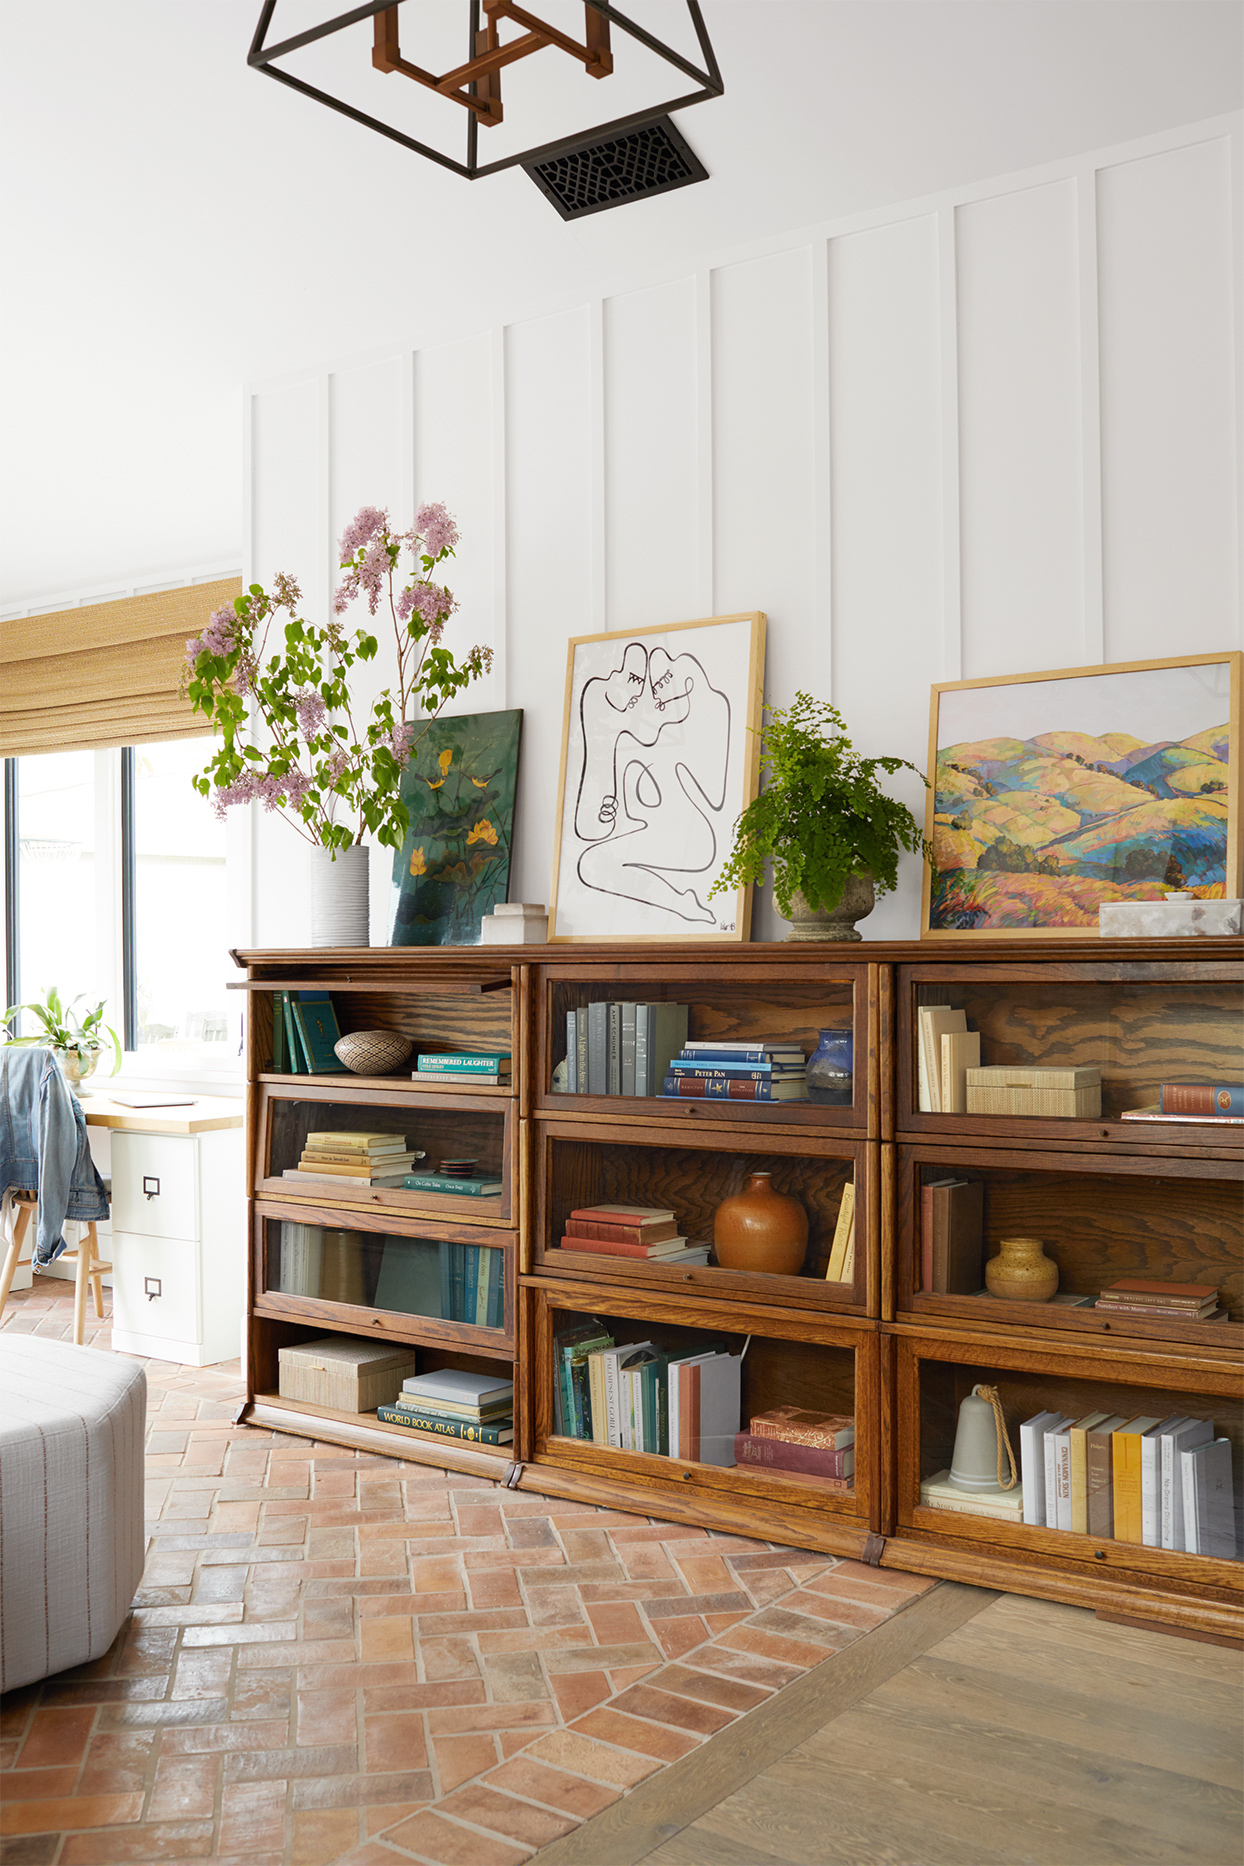 storage shelves with books against wall